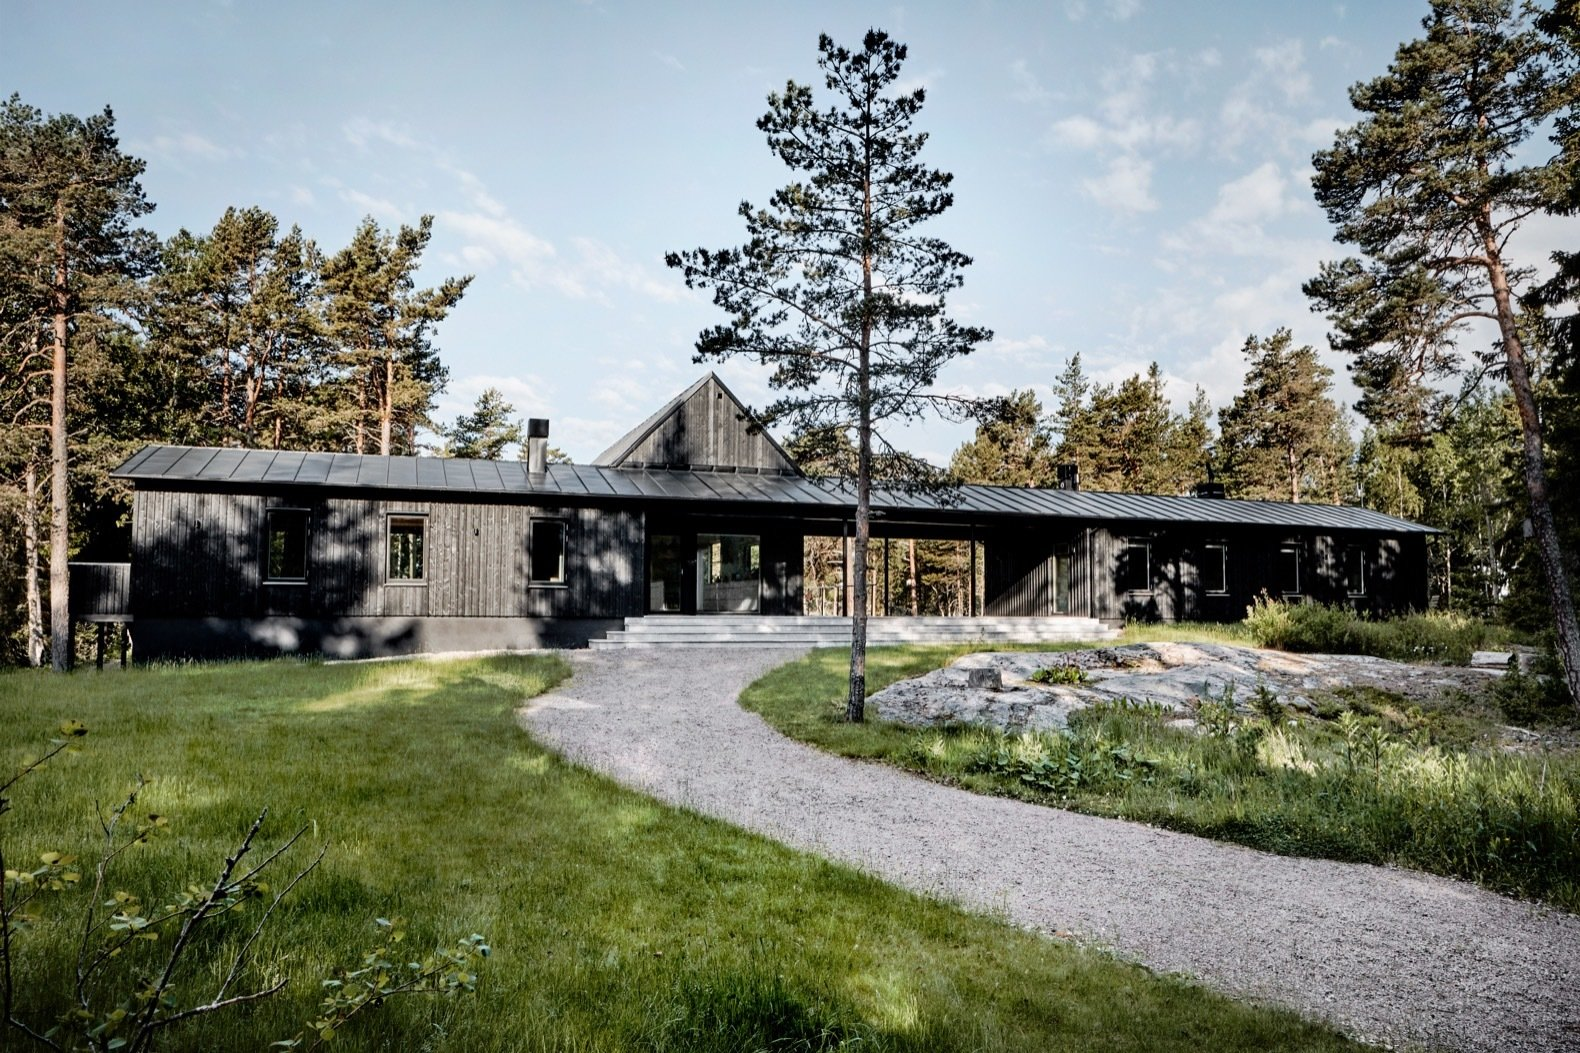 Outdoor, Hardscapes, Front Yard, Grass, Concrete Patio, Porch, Deck, Boulders, Walkways, Small Patio, Porch, Deck, Woodland, Shrubs, and Trees The home is accessed from the rear via a gravel path.  Photos from An Inspiring Island Retreat Mixes Scandinavian Style With Japanese Simplicity